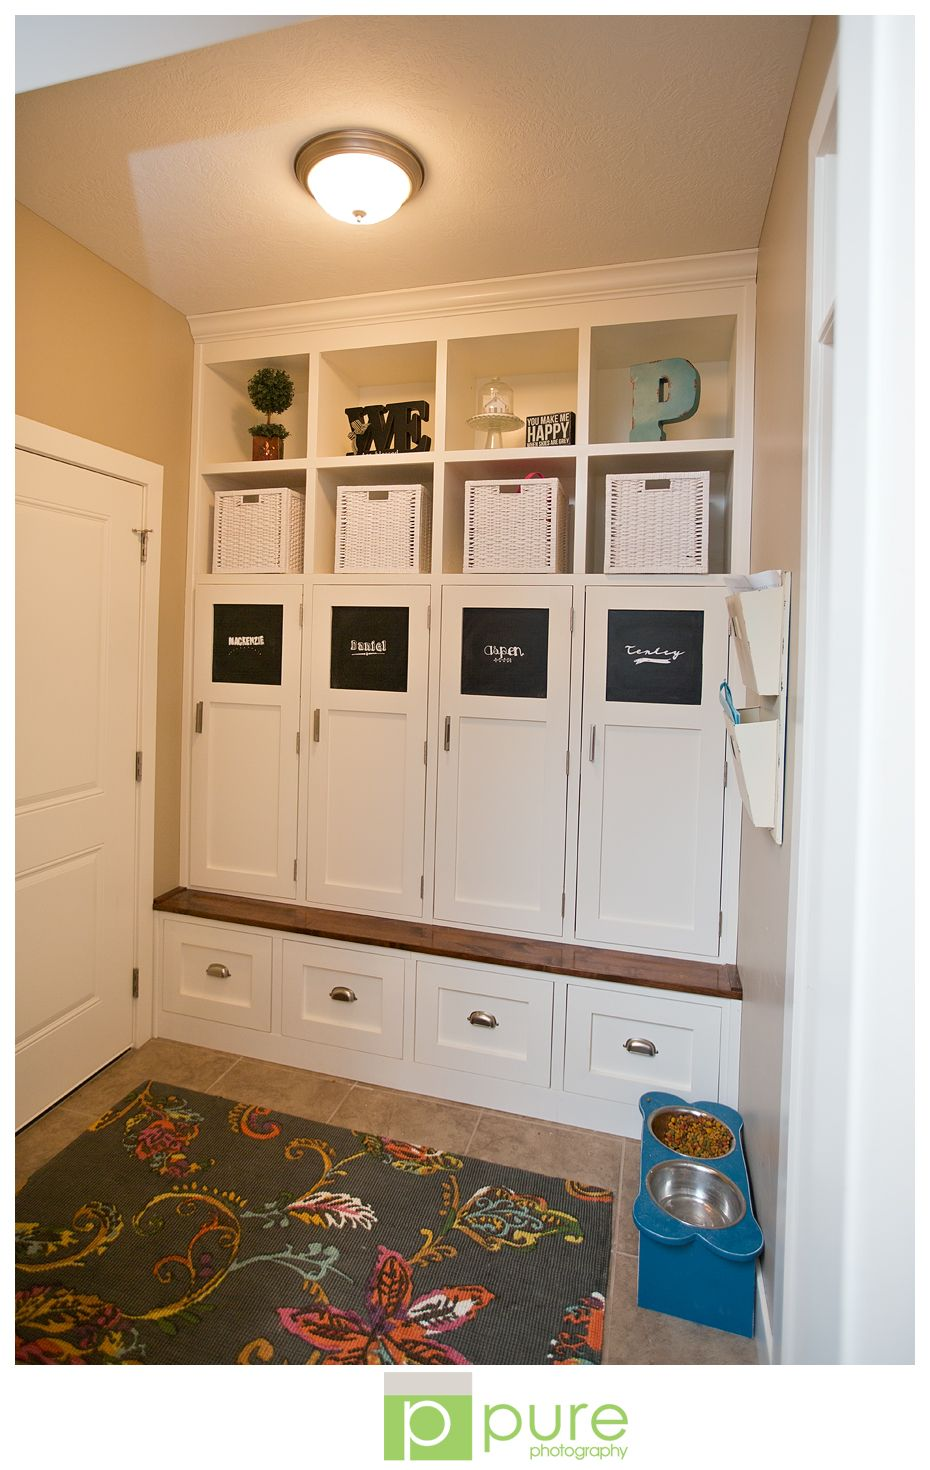 Mudroom With Chalkboard Contact Paper For Names Home Lockers Mud Room Storage Pictures For Kitchen Walls Build me home mudroom edition